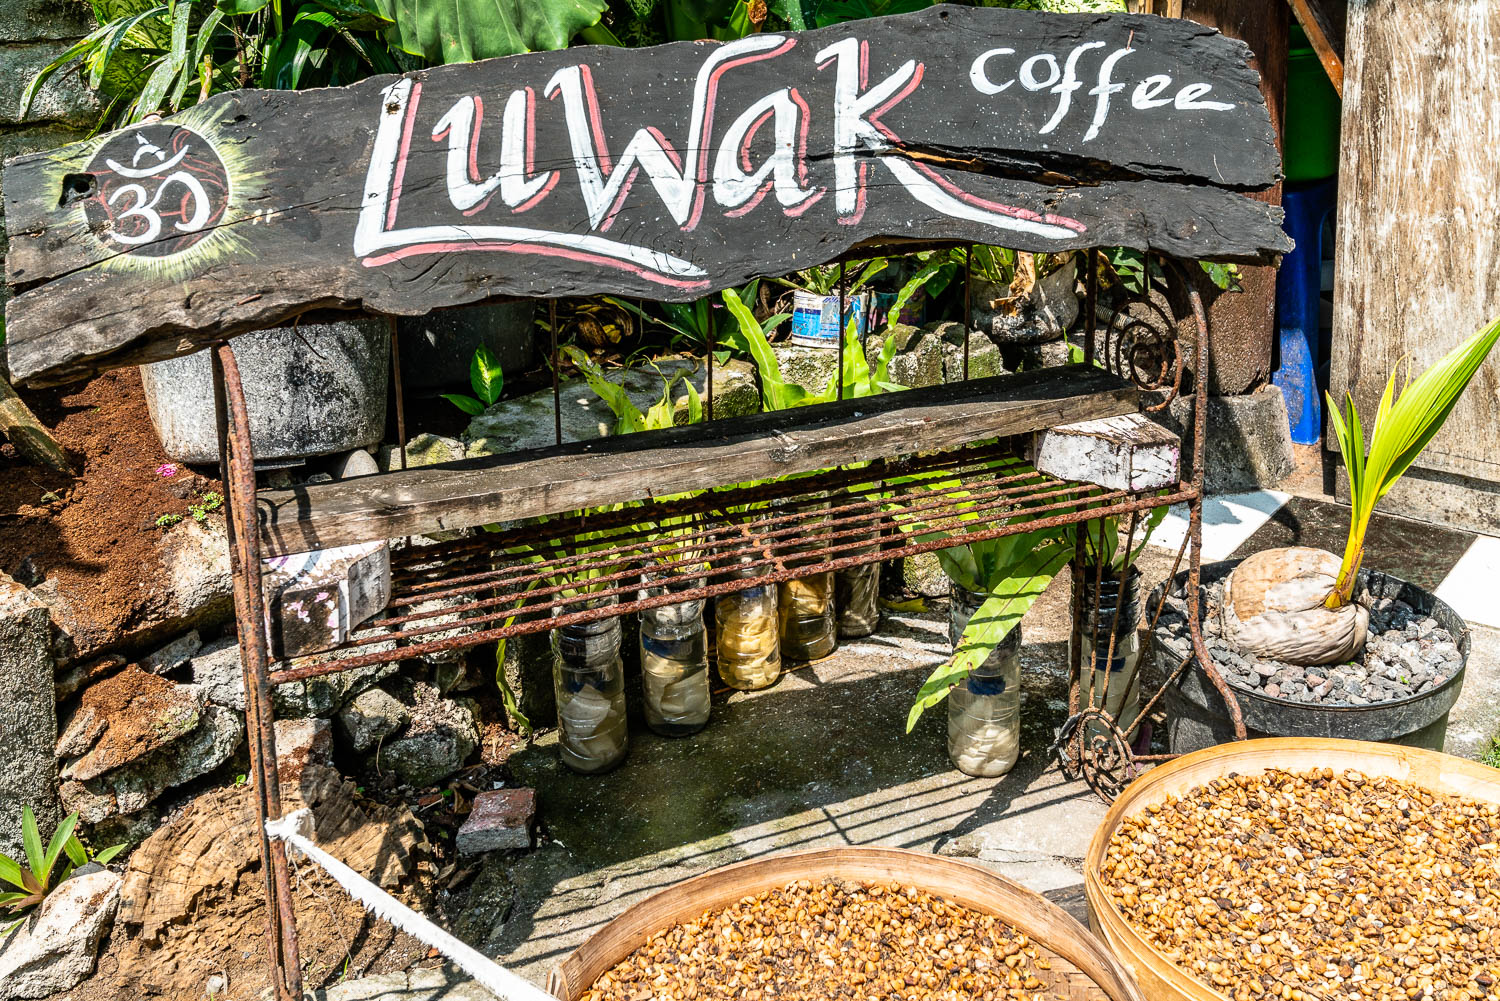 Kopi Luwak (coffee Luwak), also known as Civet coffee, is tasty and expensive.